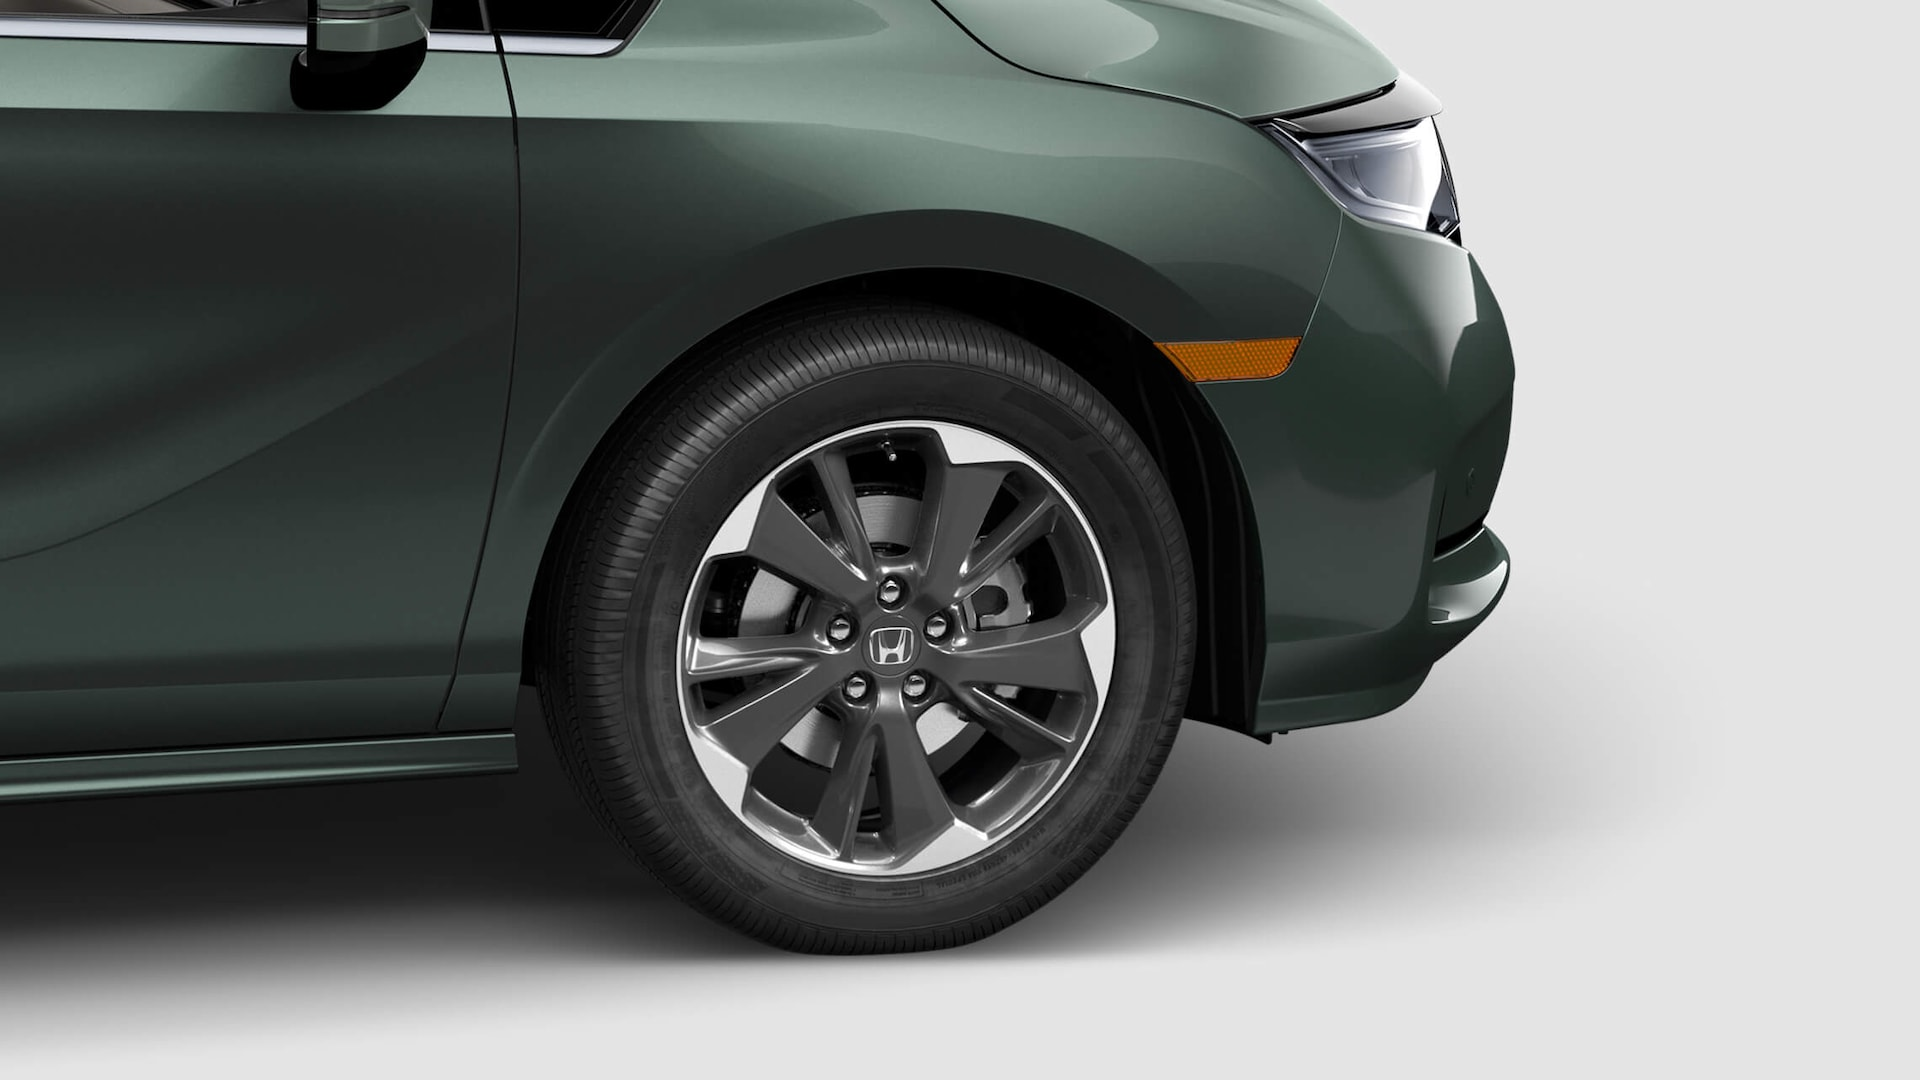 19-inch alloy wheel detail on the 2021 Honda Odyssey Elite in Forest Mist Metallic.